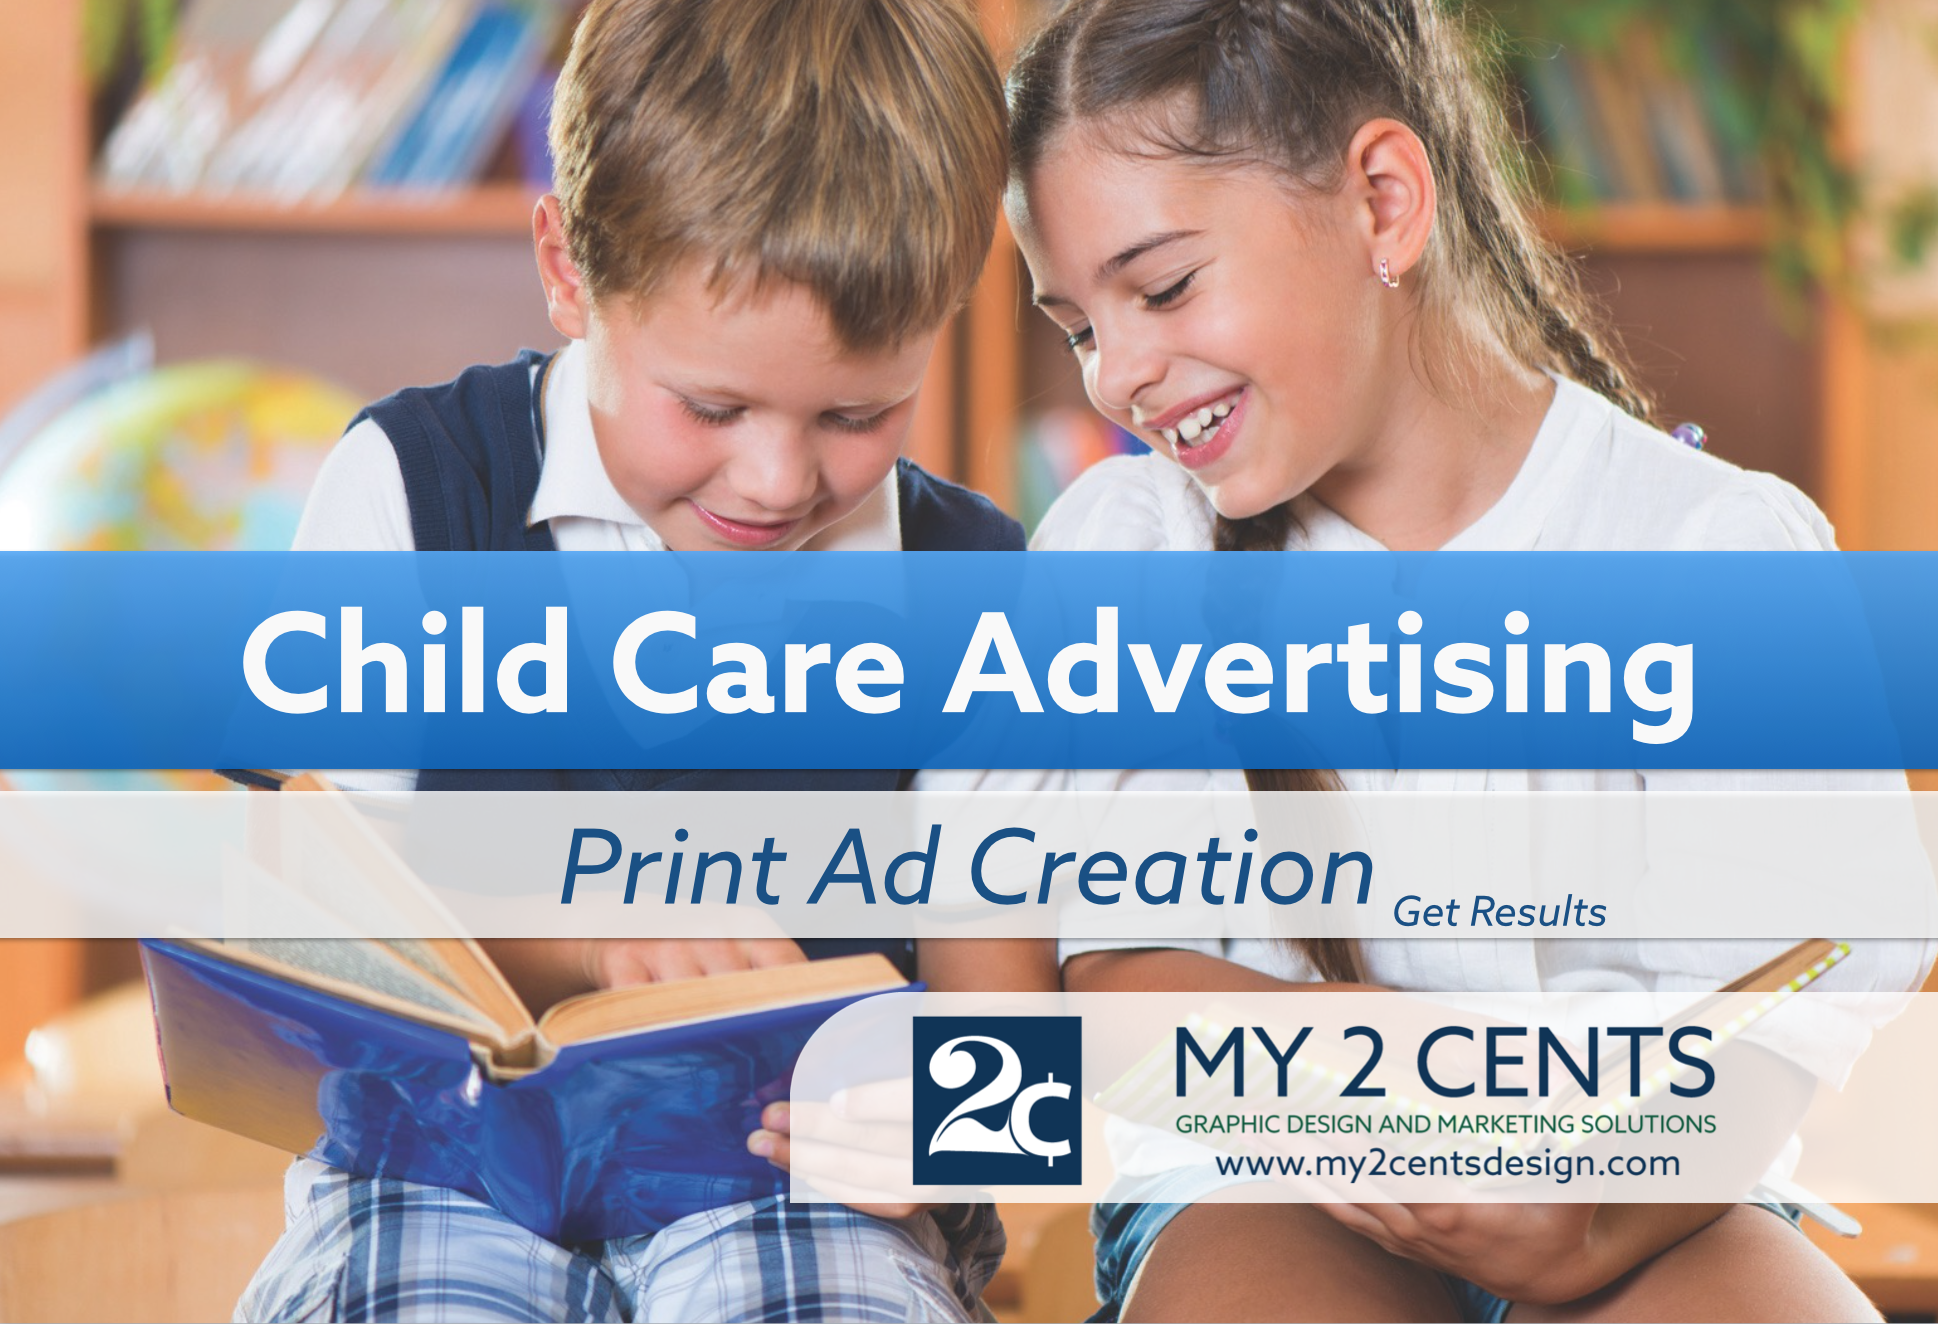 Child Care Advertising   Print Ad Creation Tips   My 2 Cents Design